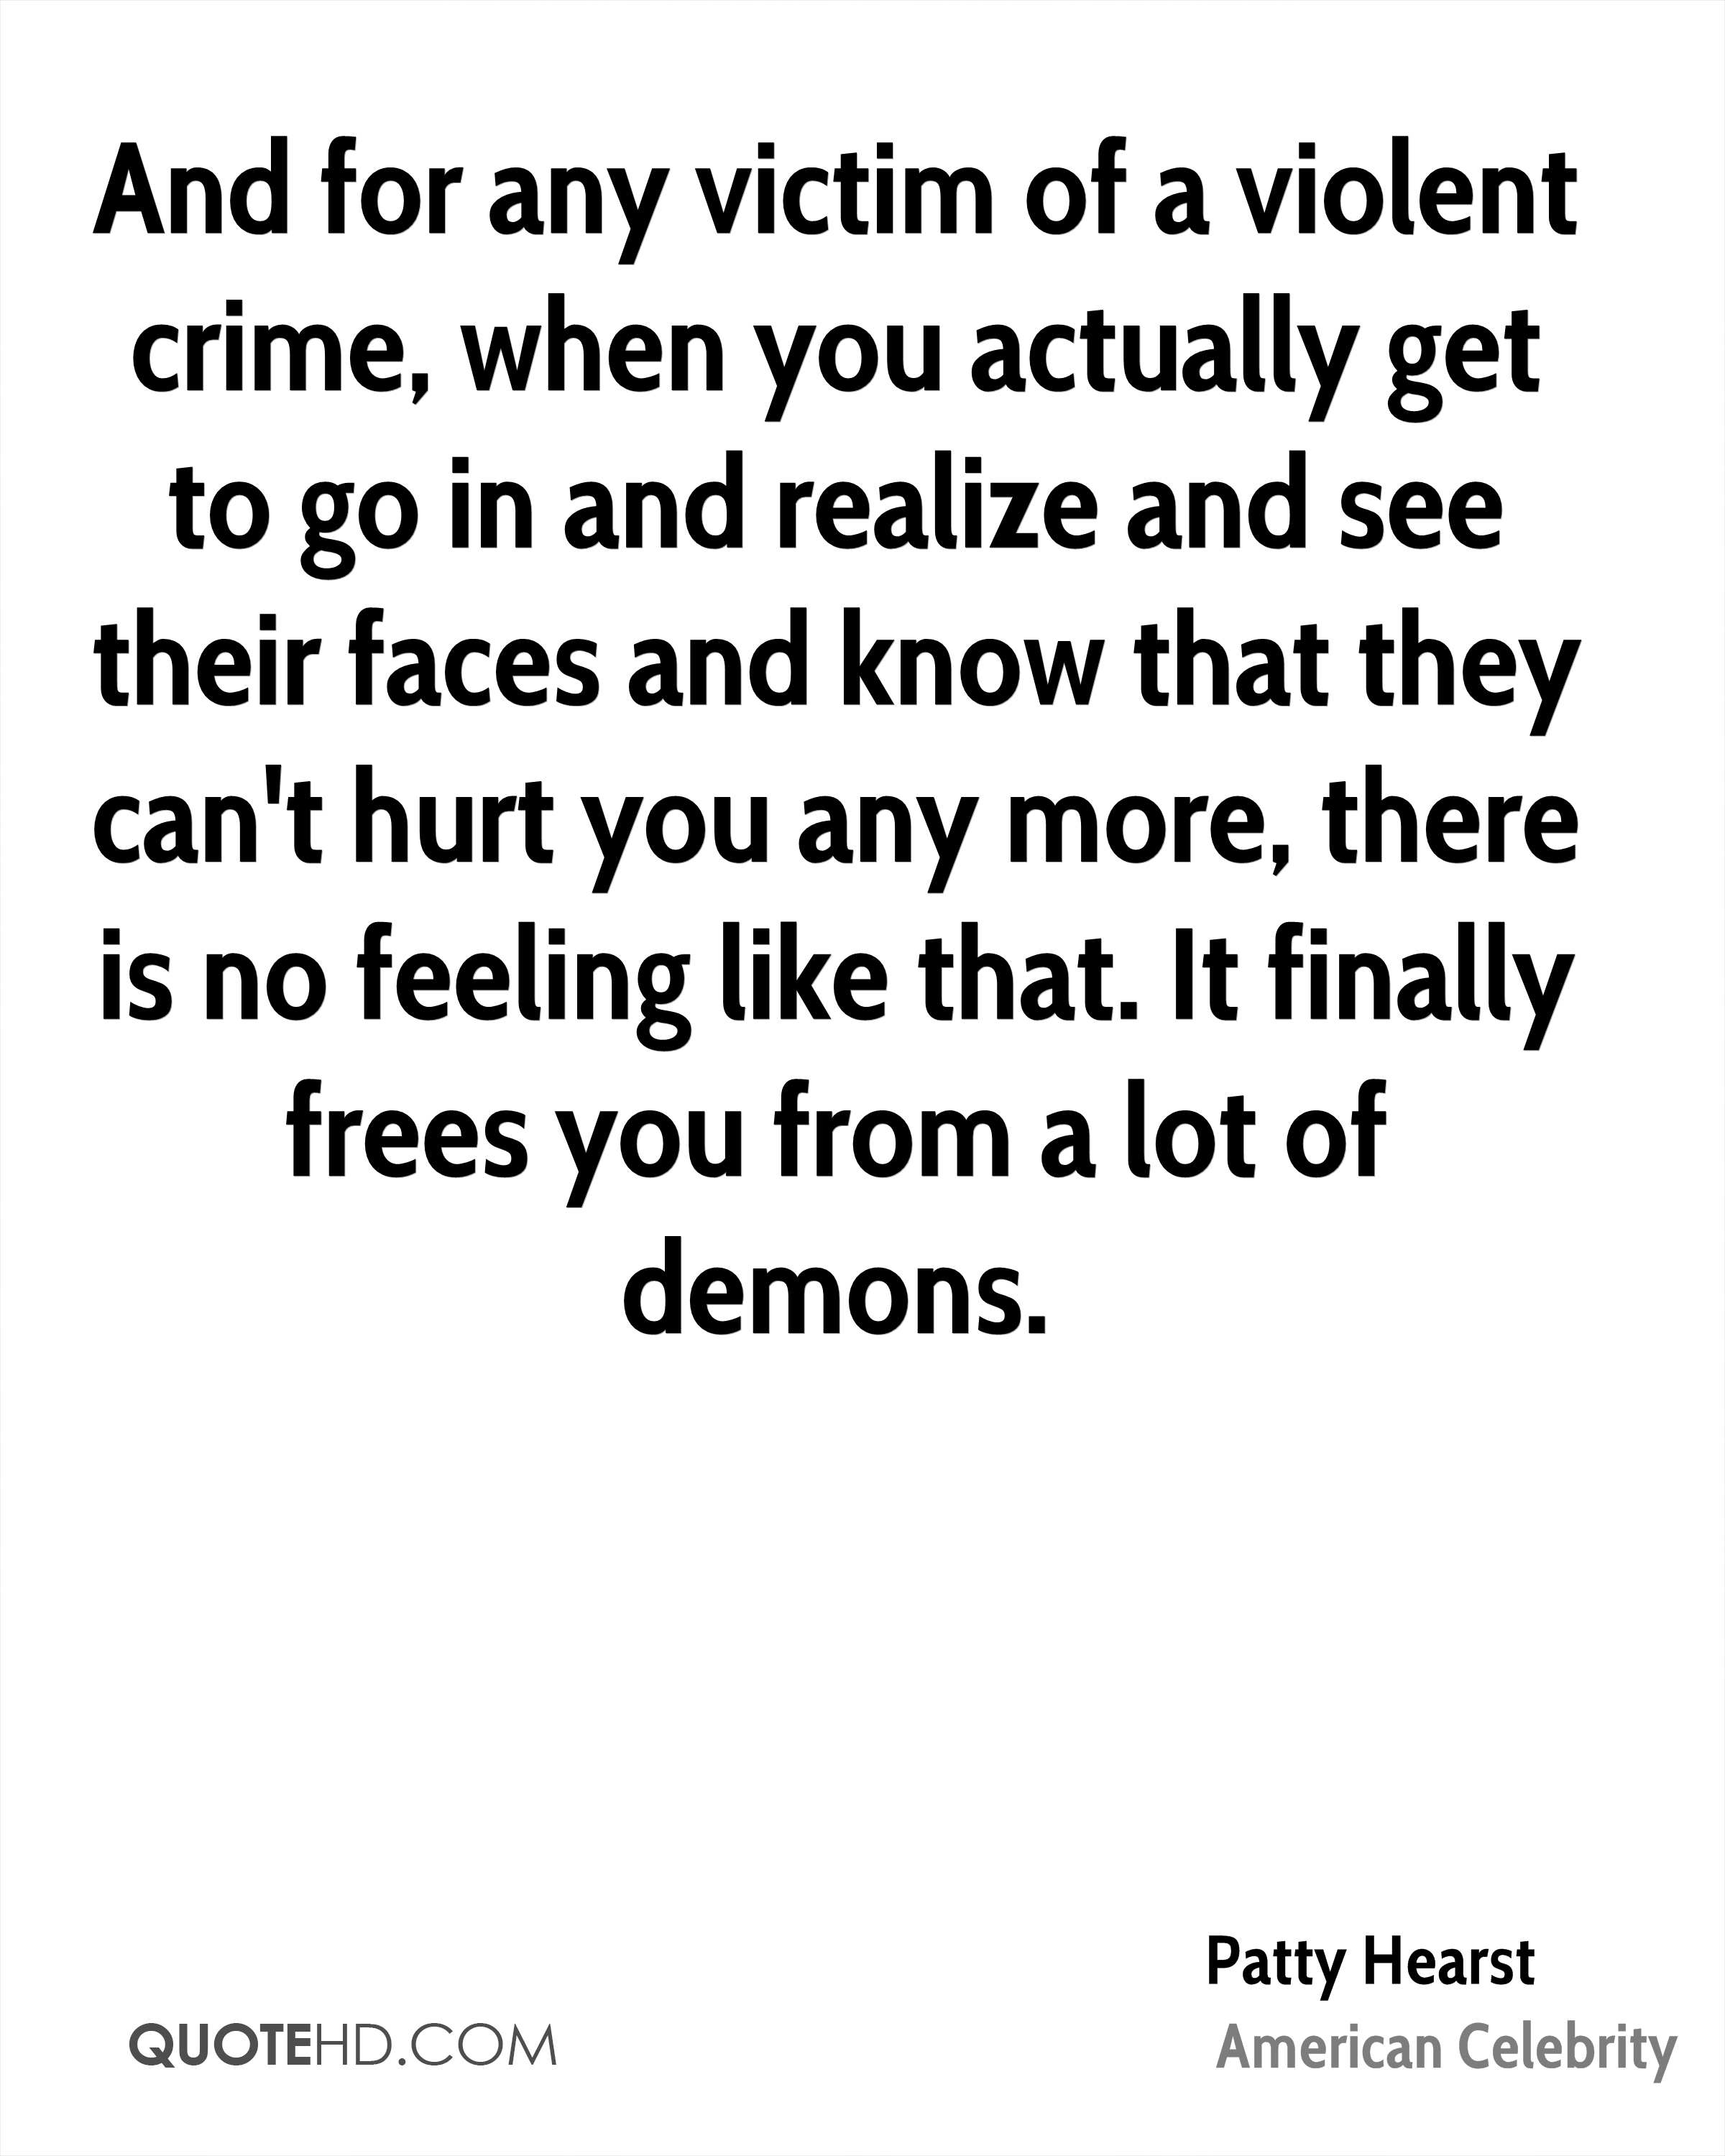 And for any victim of a violent crime, when you actually get to go in and realize and see their faces and know that they can't hurt you any more, there is no feeling like that. It finally frees you from a lot of demons.